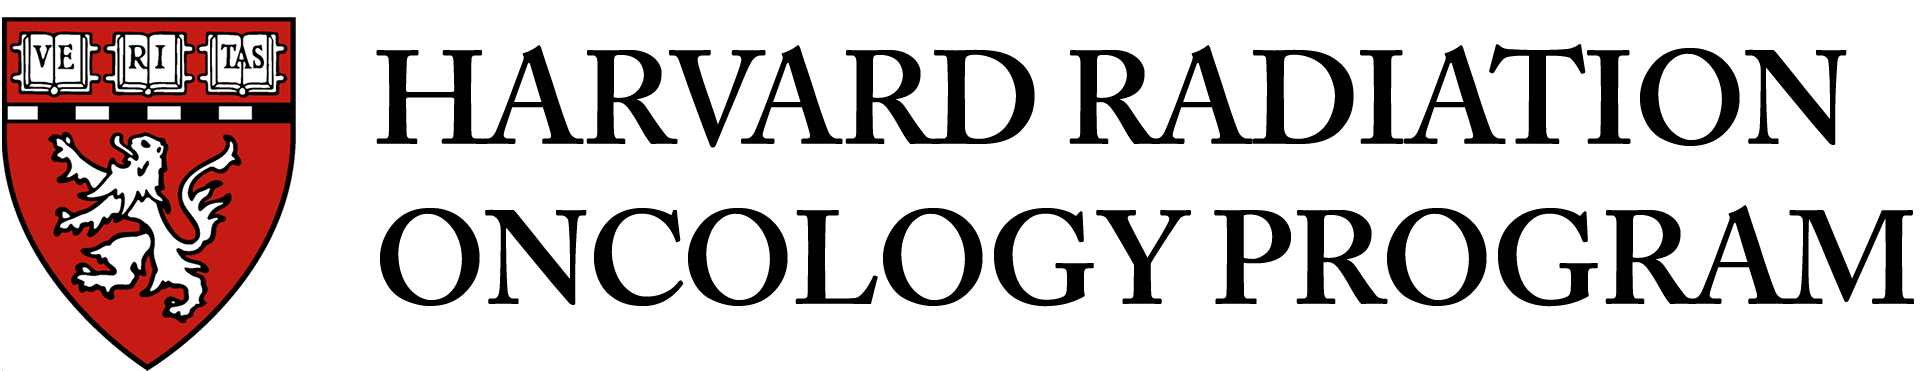 Harvard Radiation Oncology Residency Program – Boston, MA